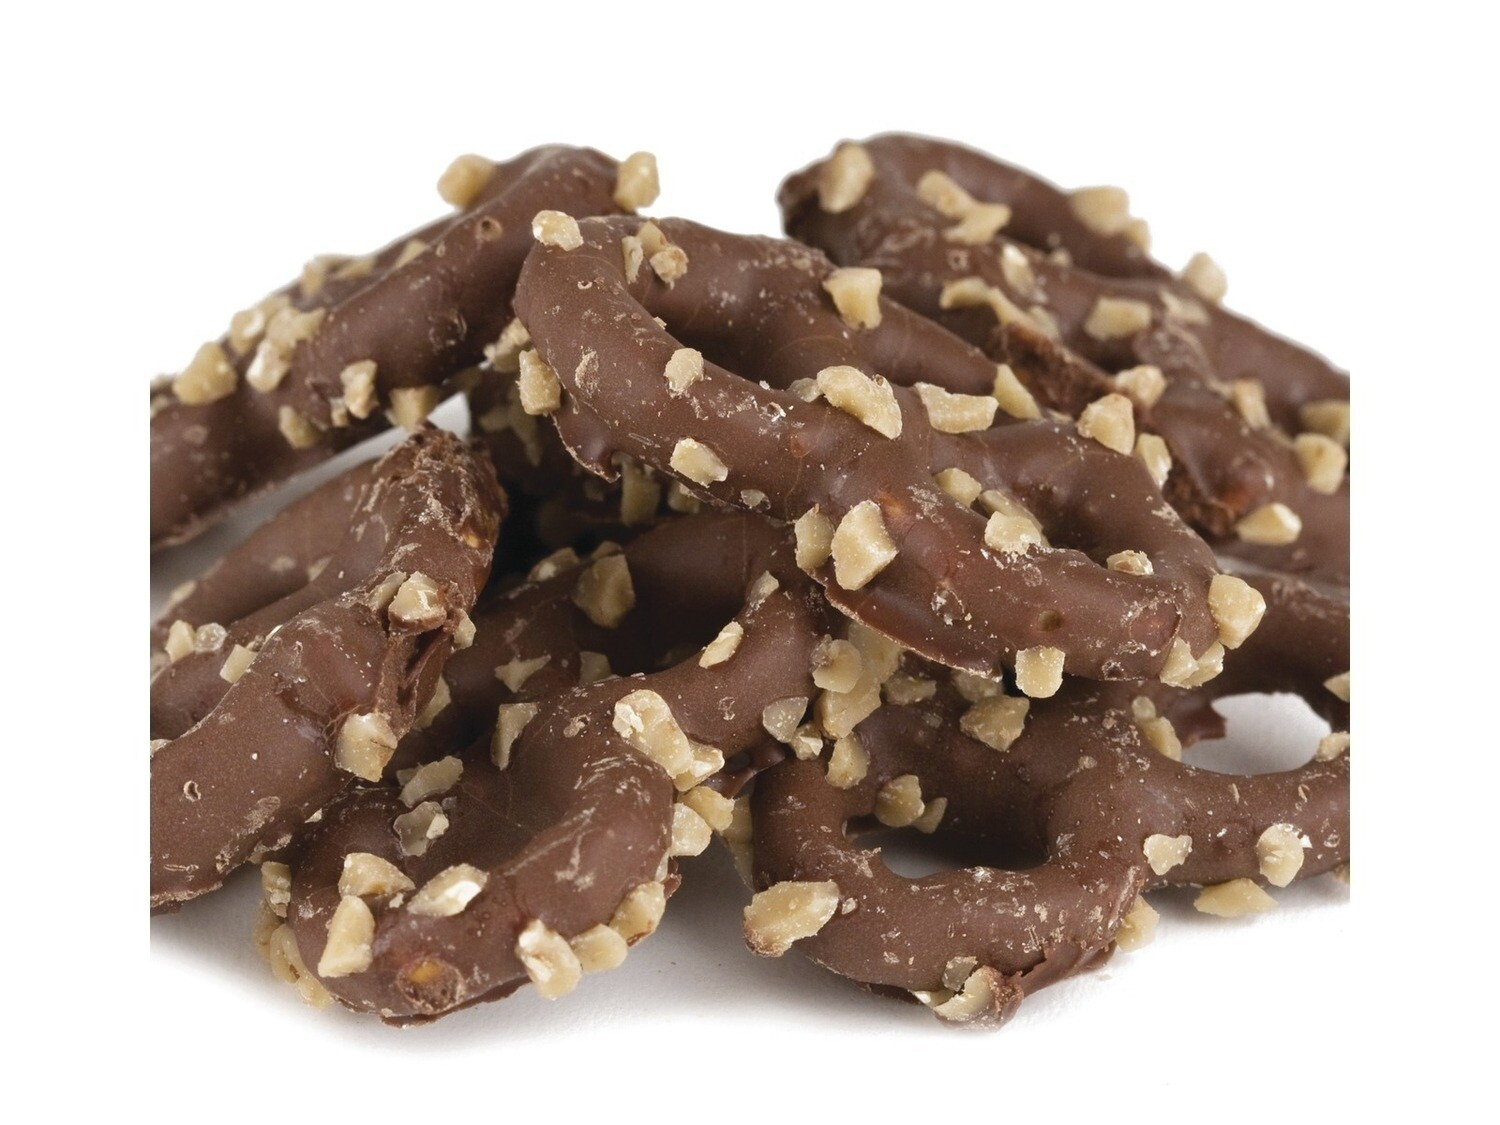 Chocolate Toffee Covered Pretzels